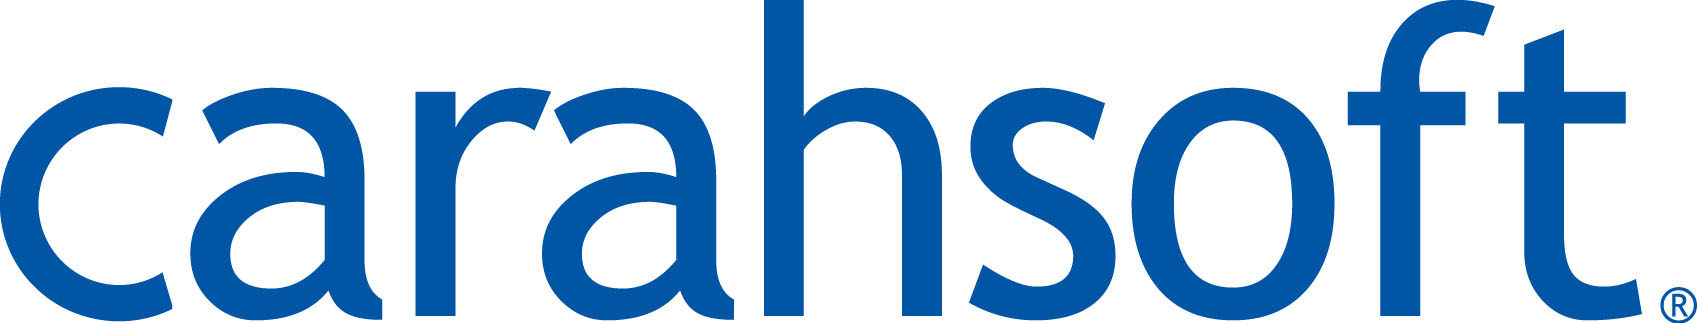 Carahsoft_Blue_Logo.jpg